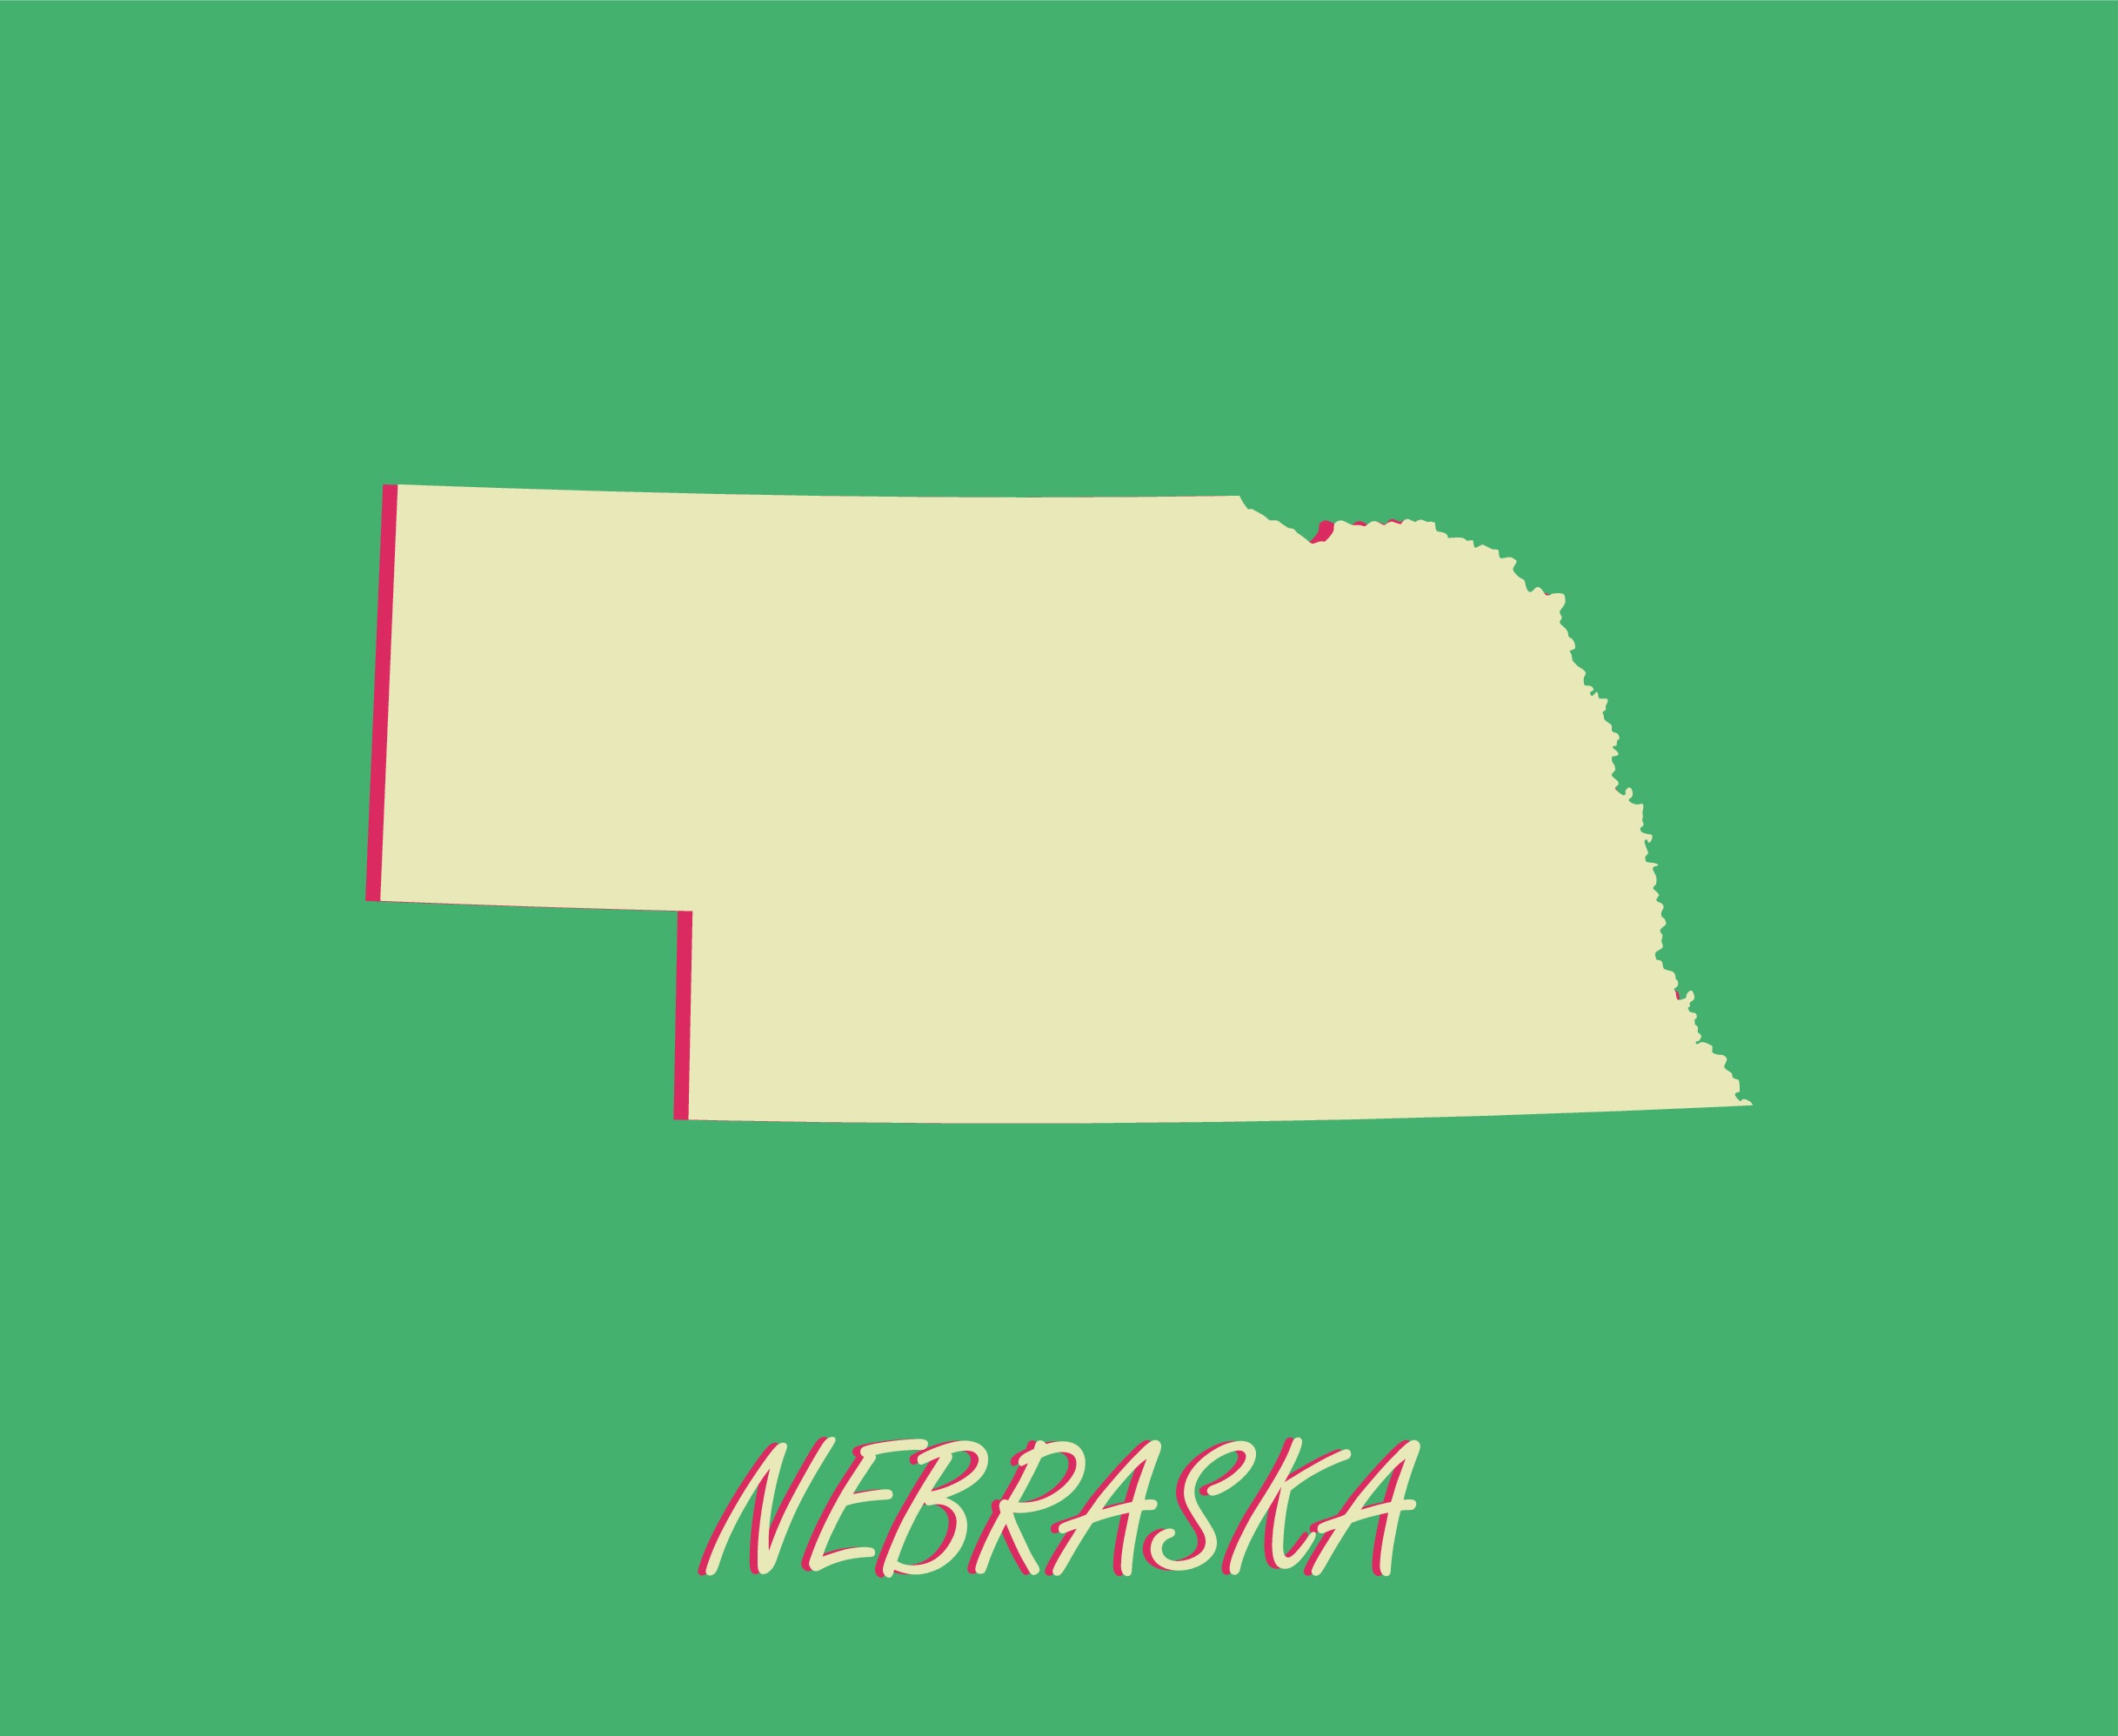 Nanny tax and payroll requirements for Nebraska families